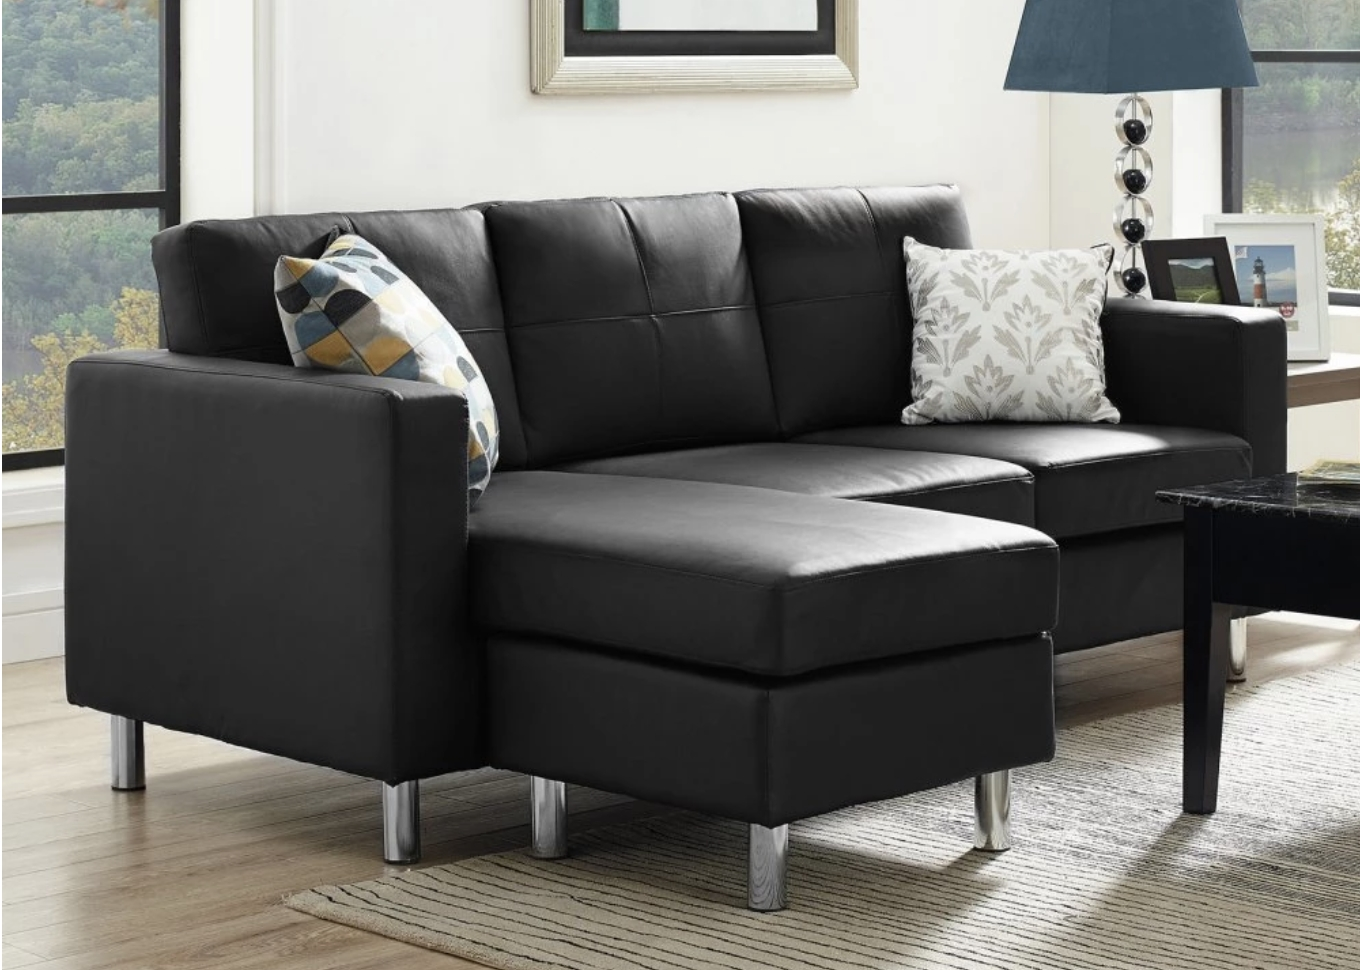 75 Modern Sectional Sofas For Small Spaces (2018) For Sectional Sofas That Can Be Rearranged (Photo 9 of 10)